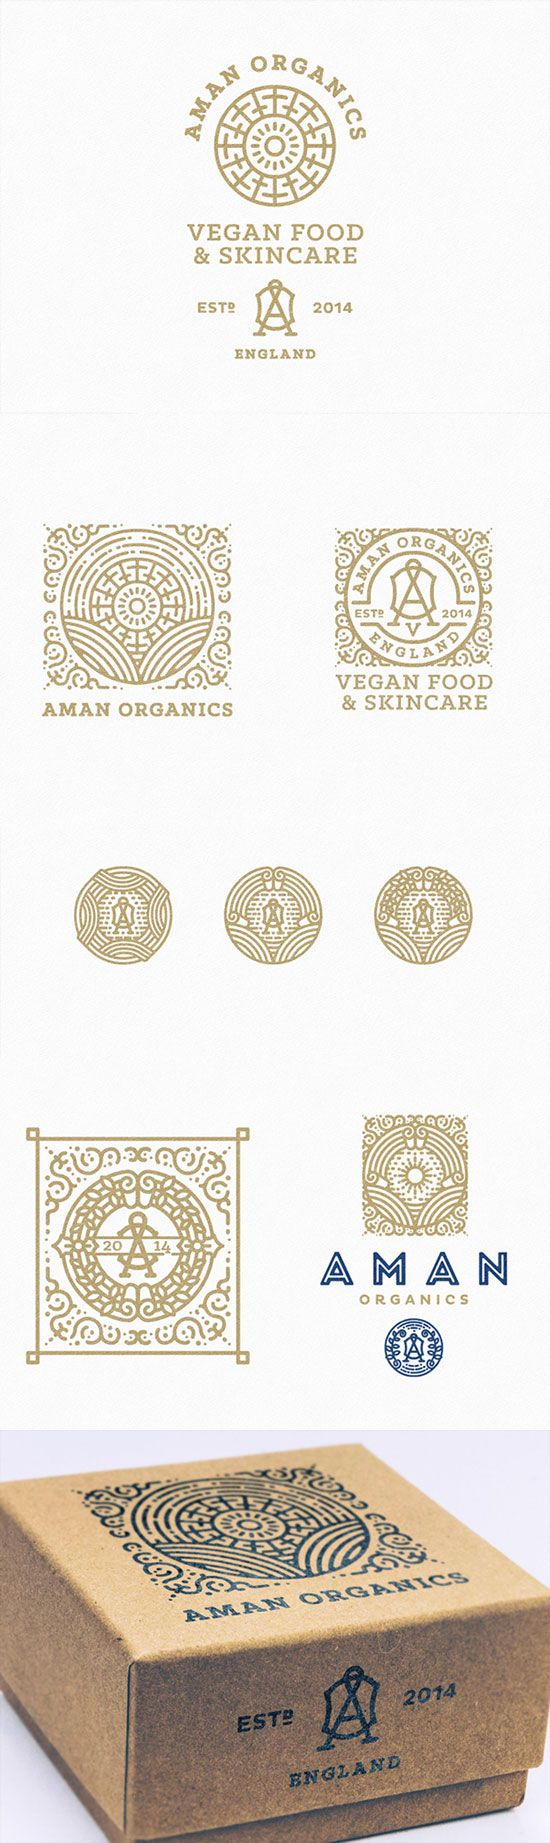 #Vegan #Food #Package #Design #Packaging #Organic #Brand #ID